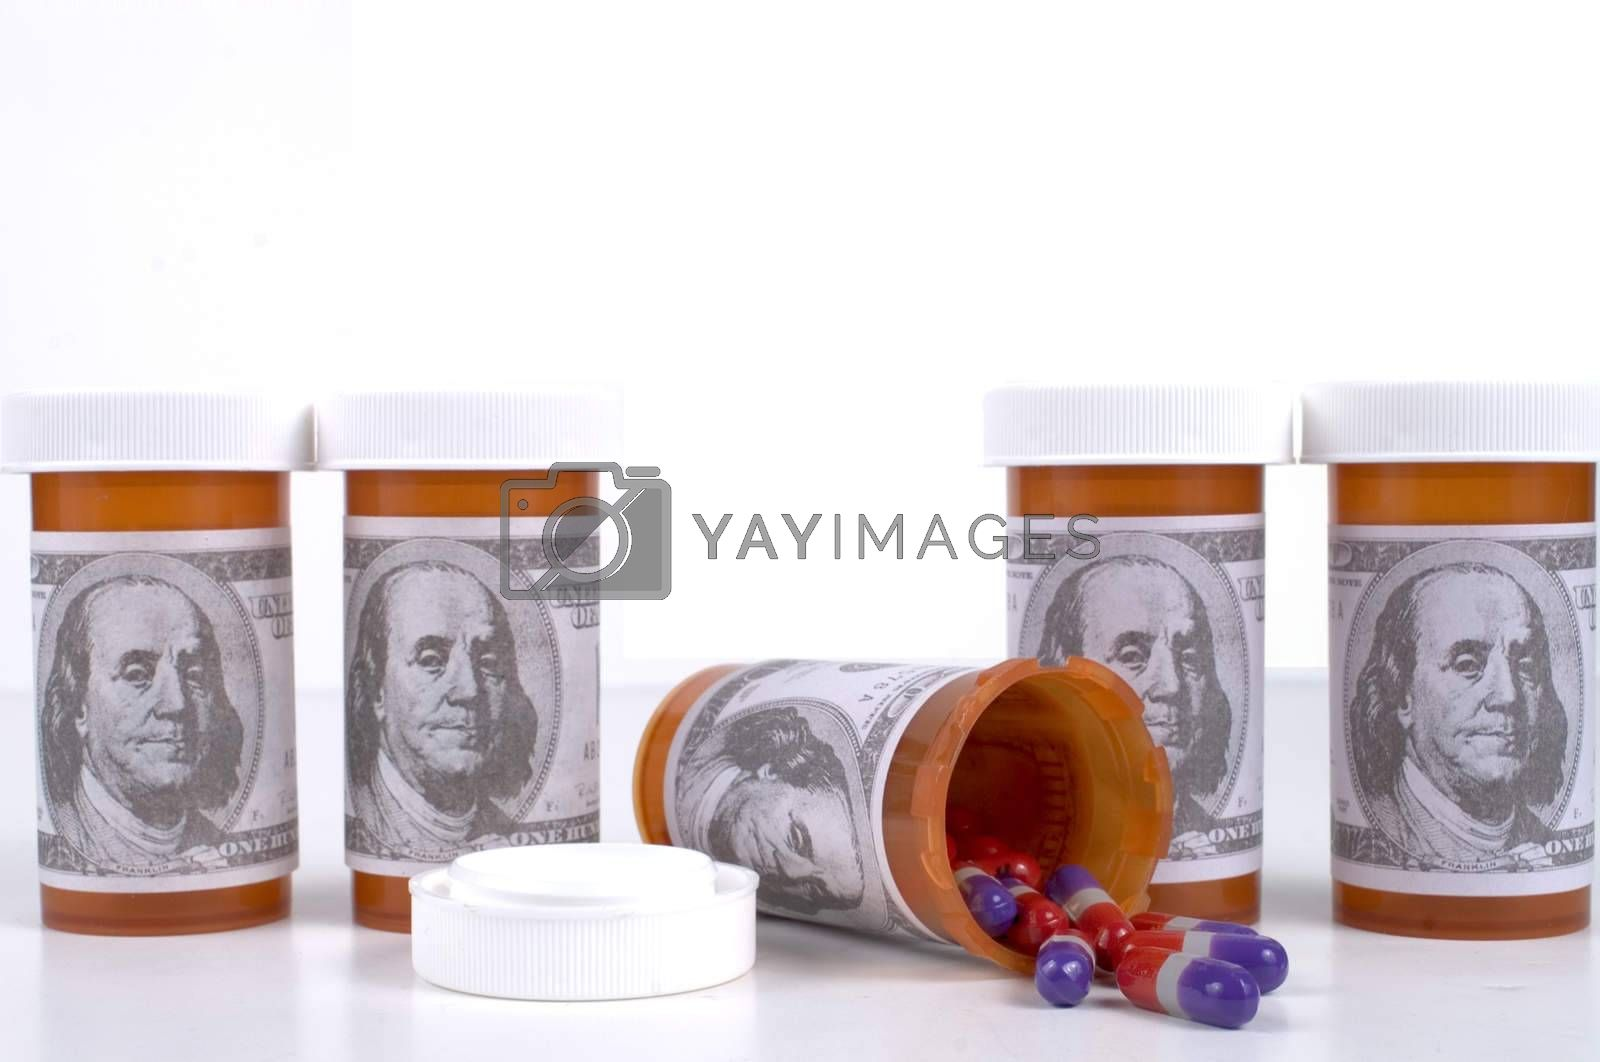 Royalty free image of Expensive Medication by mothy20